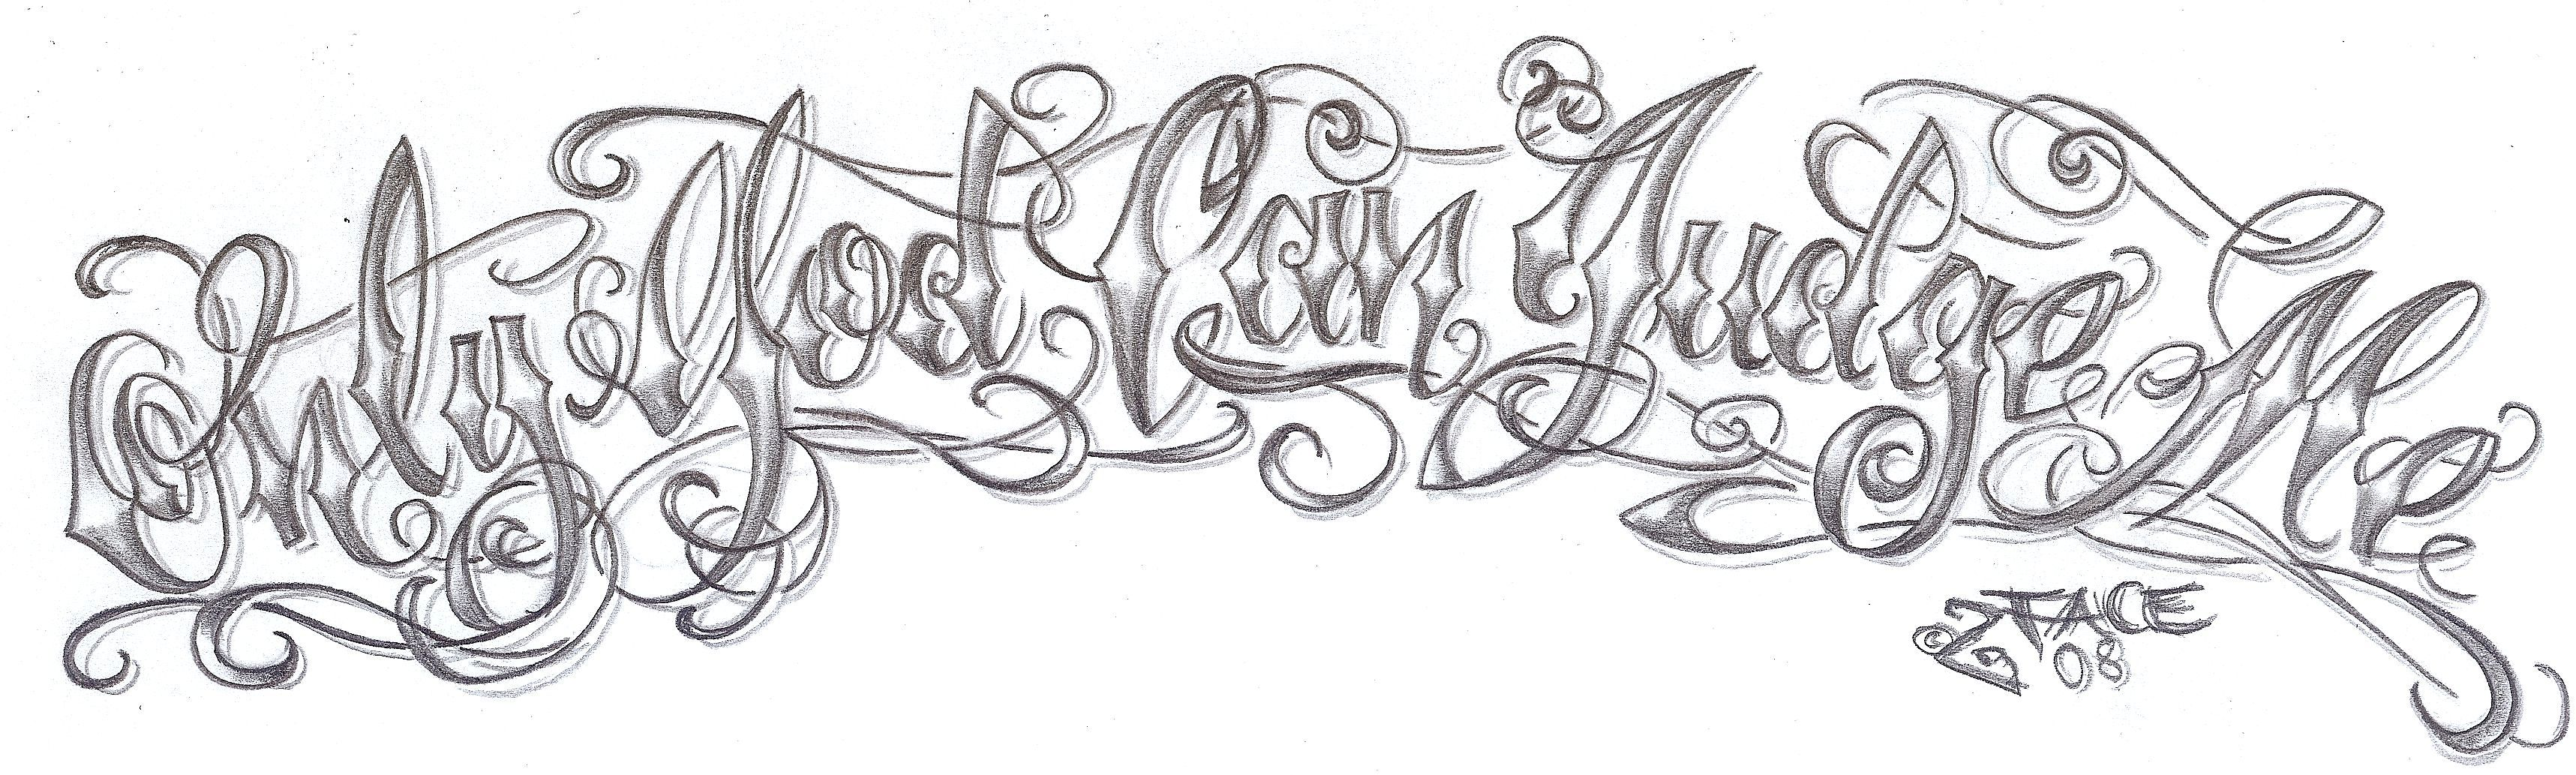 Chicano Lettering God Design By 2face Tattoo Fonts